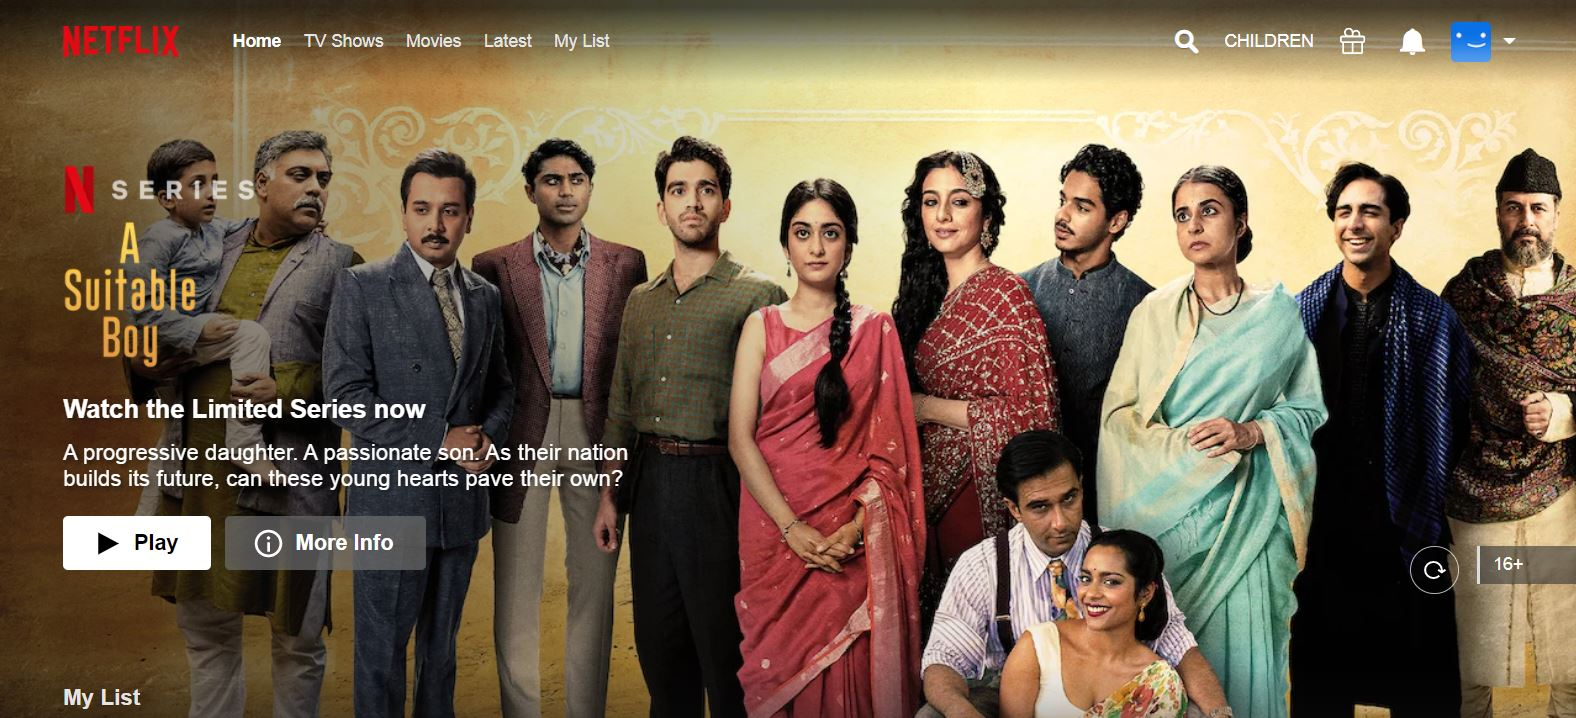 netflix india a suitable boy